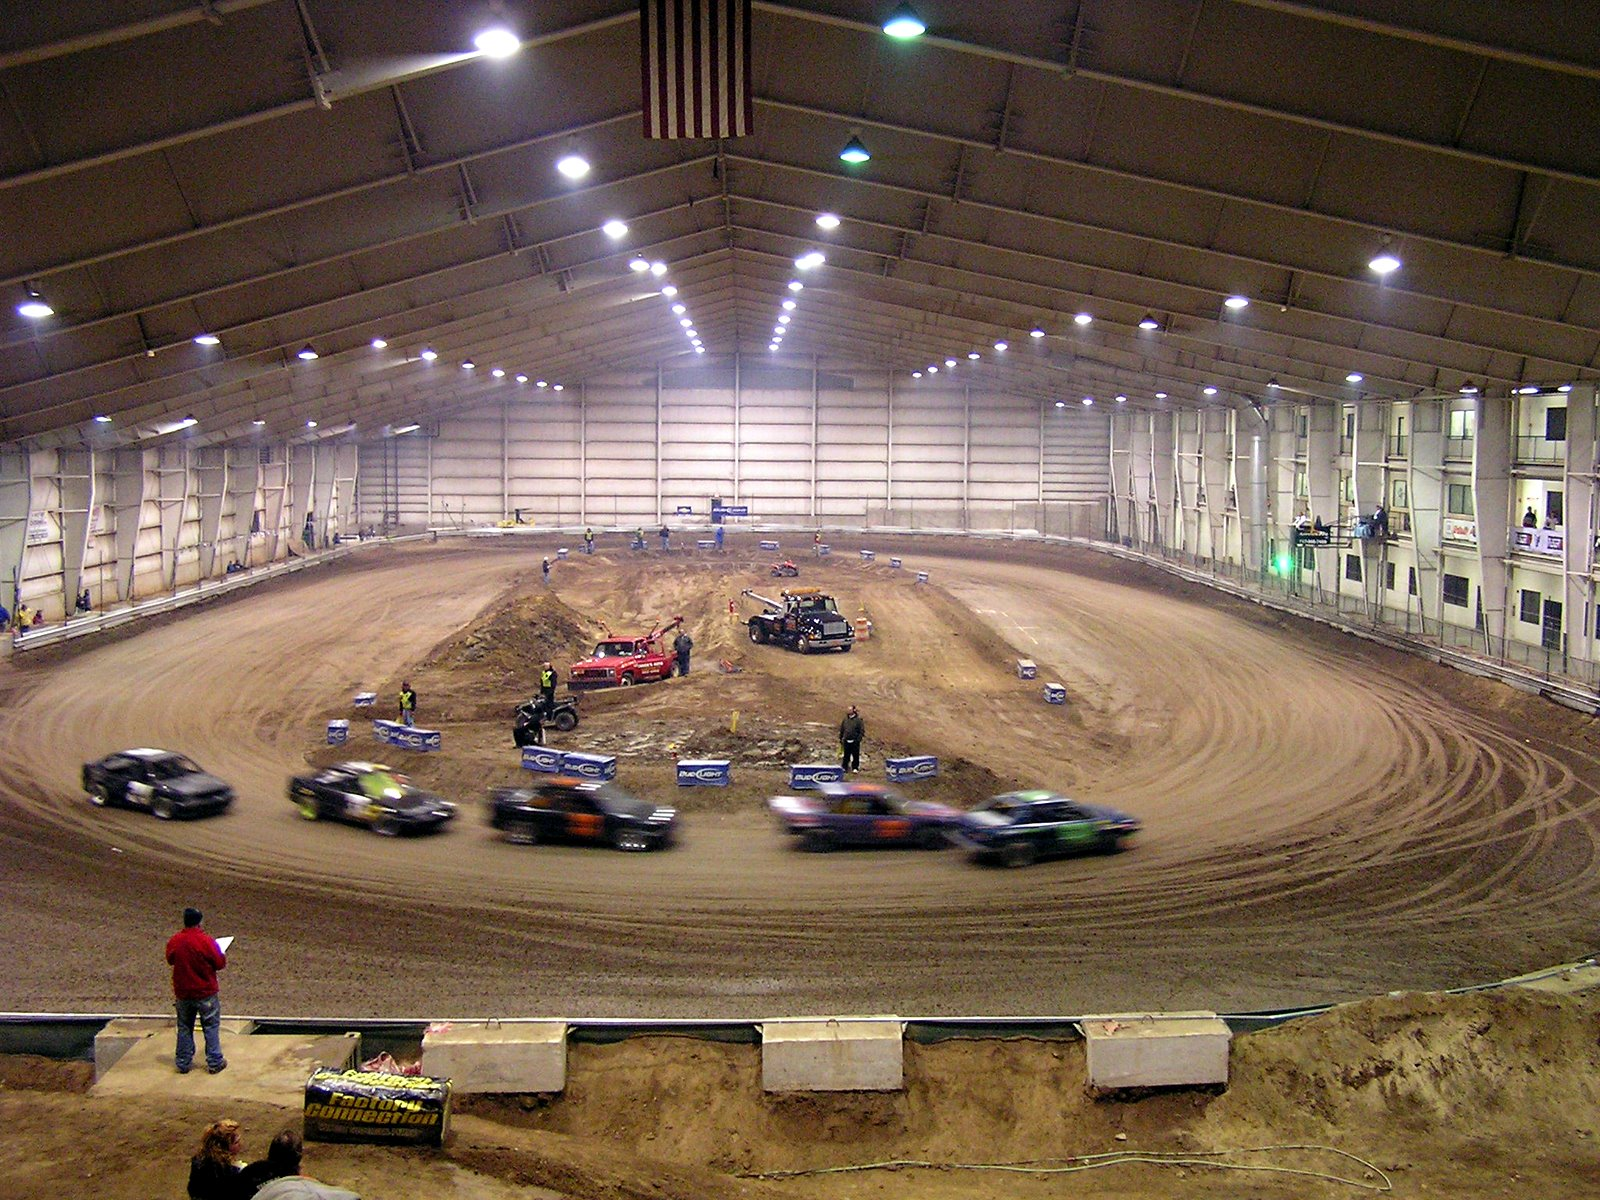 Mototown was an unusual indoor venue.  It was COLD in there.  Sadly, a fire and lack of business ended up closing the place.